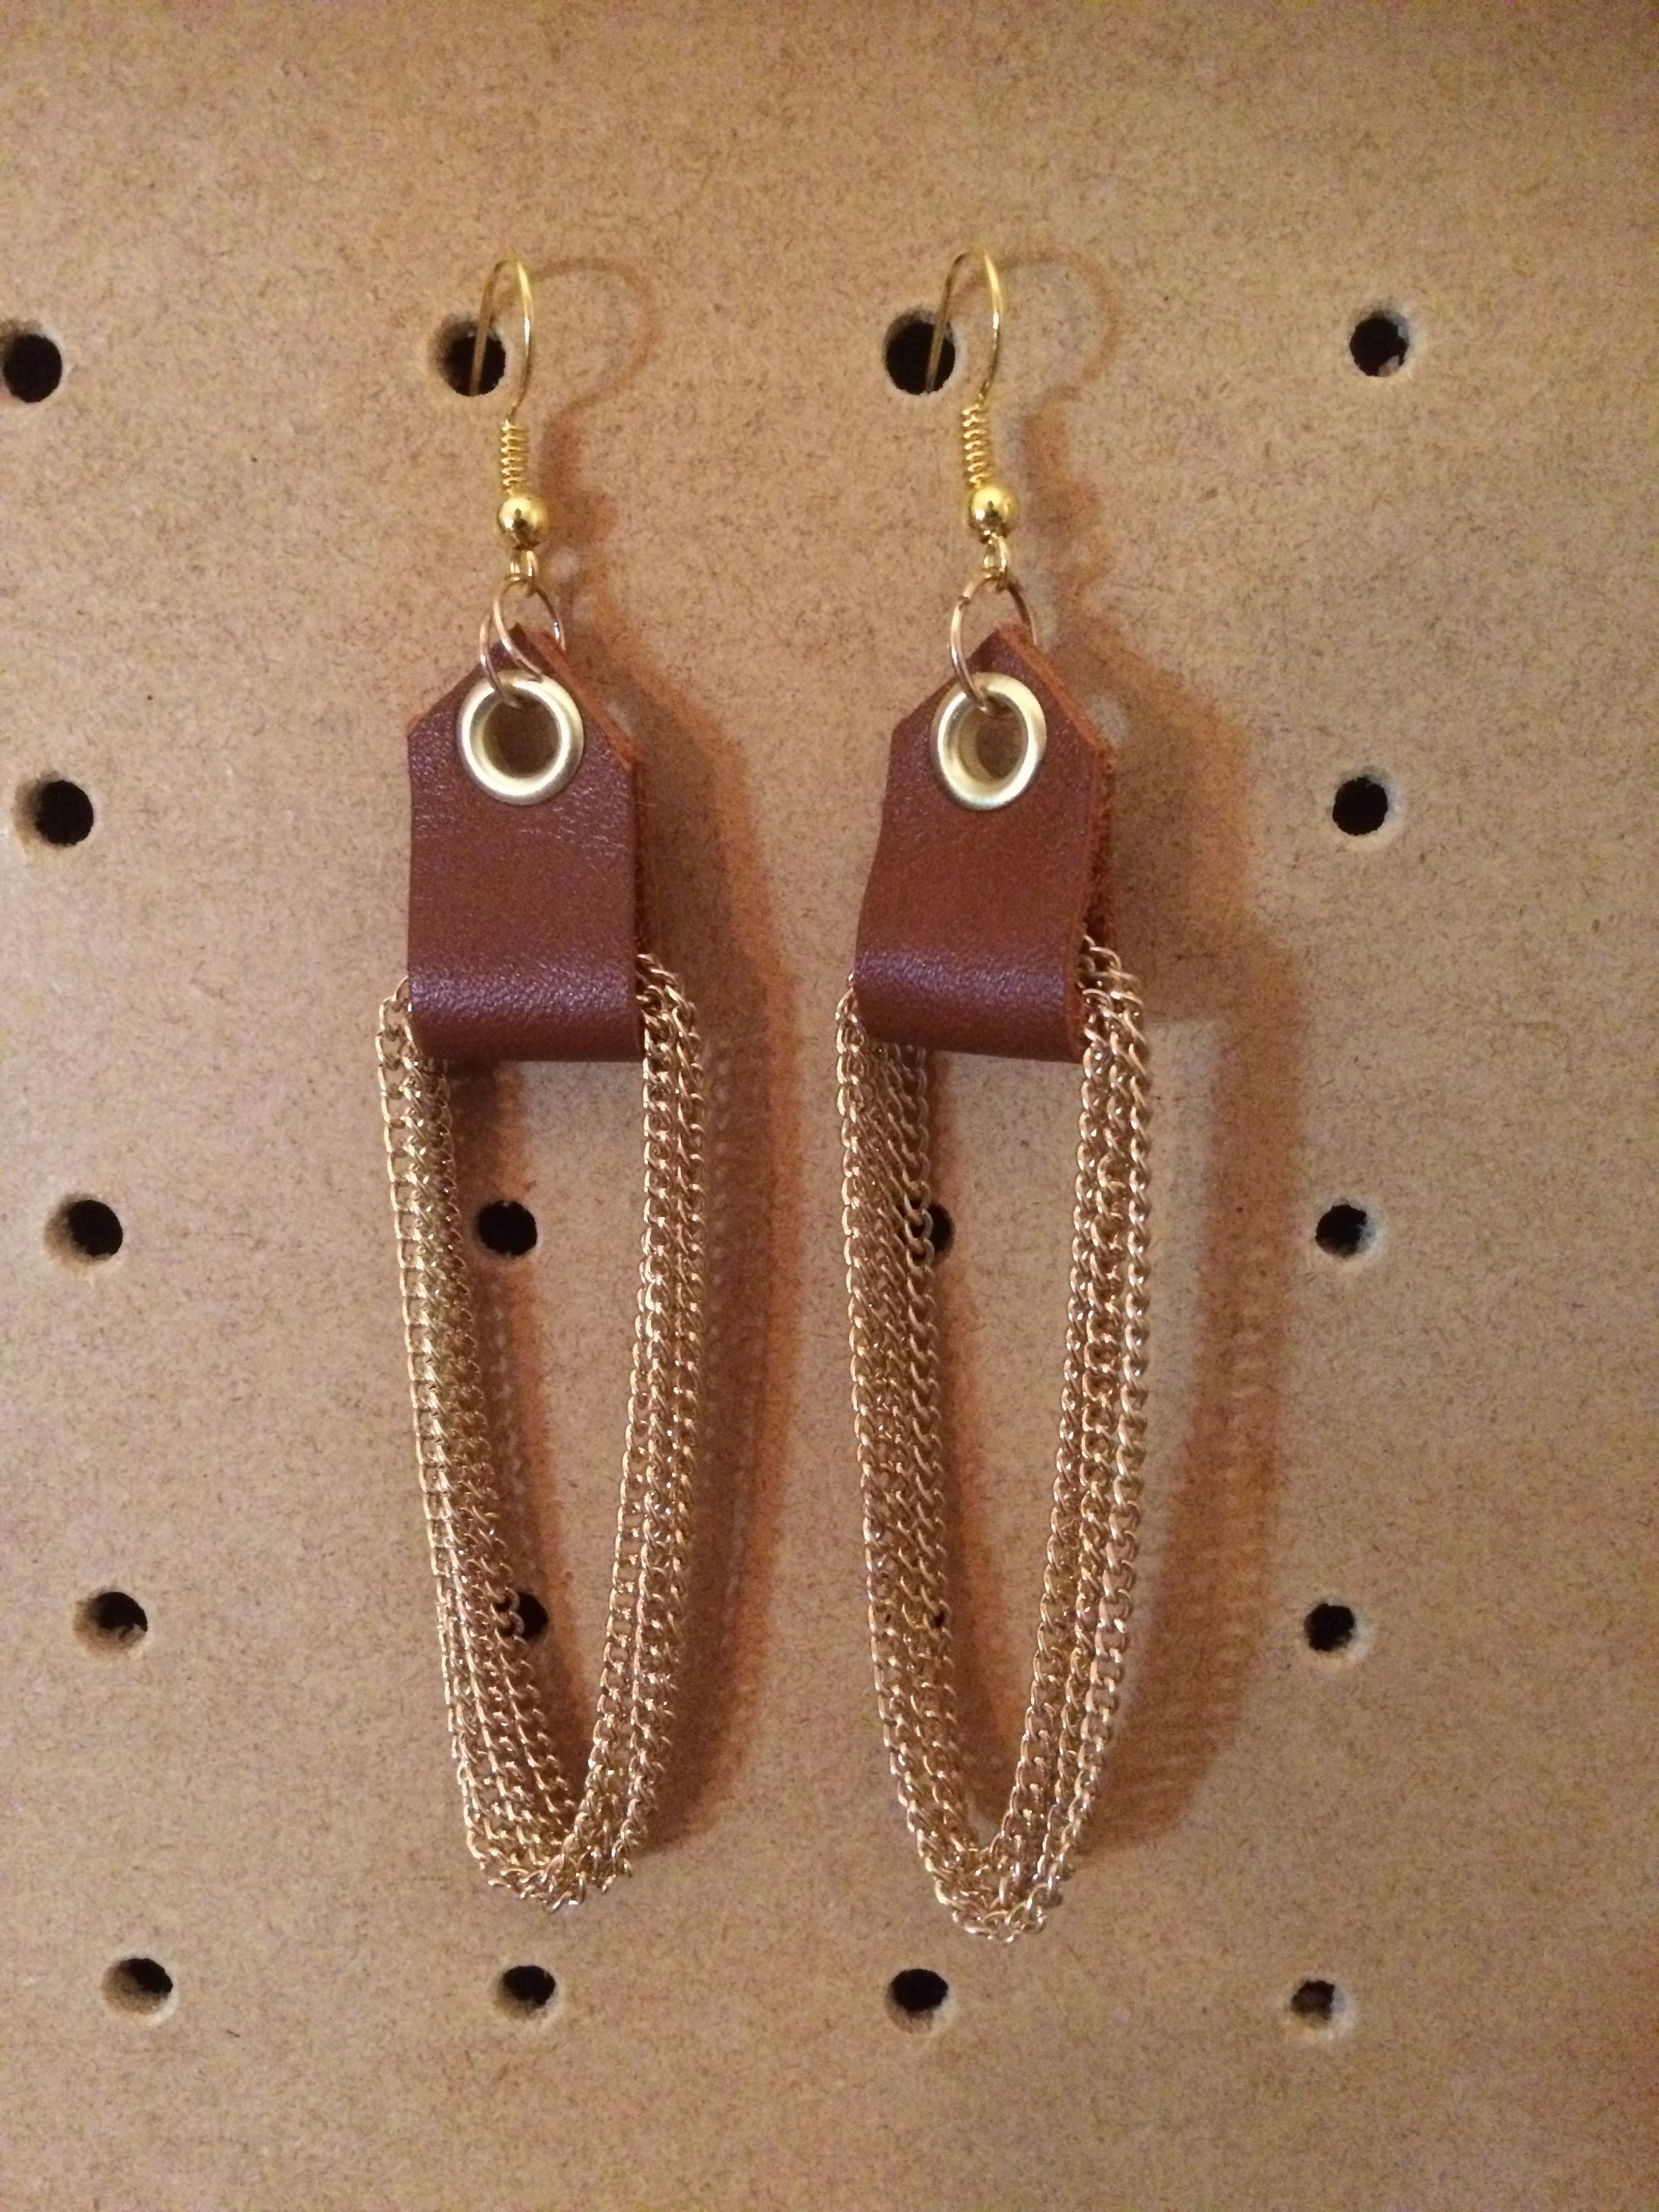 Photo of Camel leather and golden chain earrings #jewelryideas